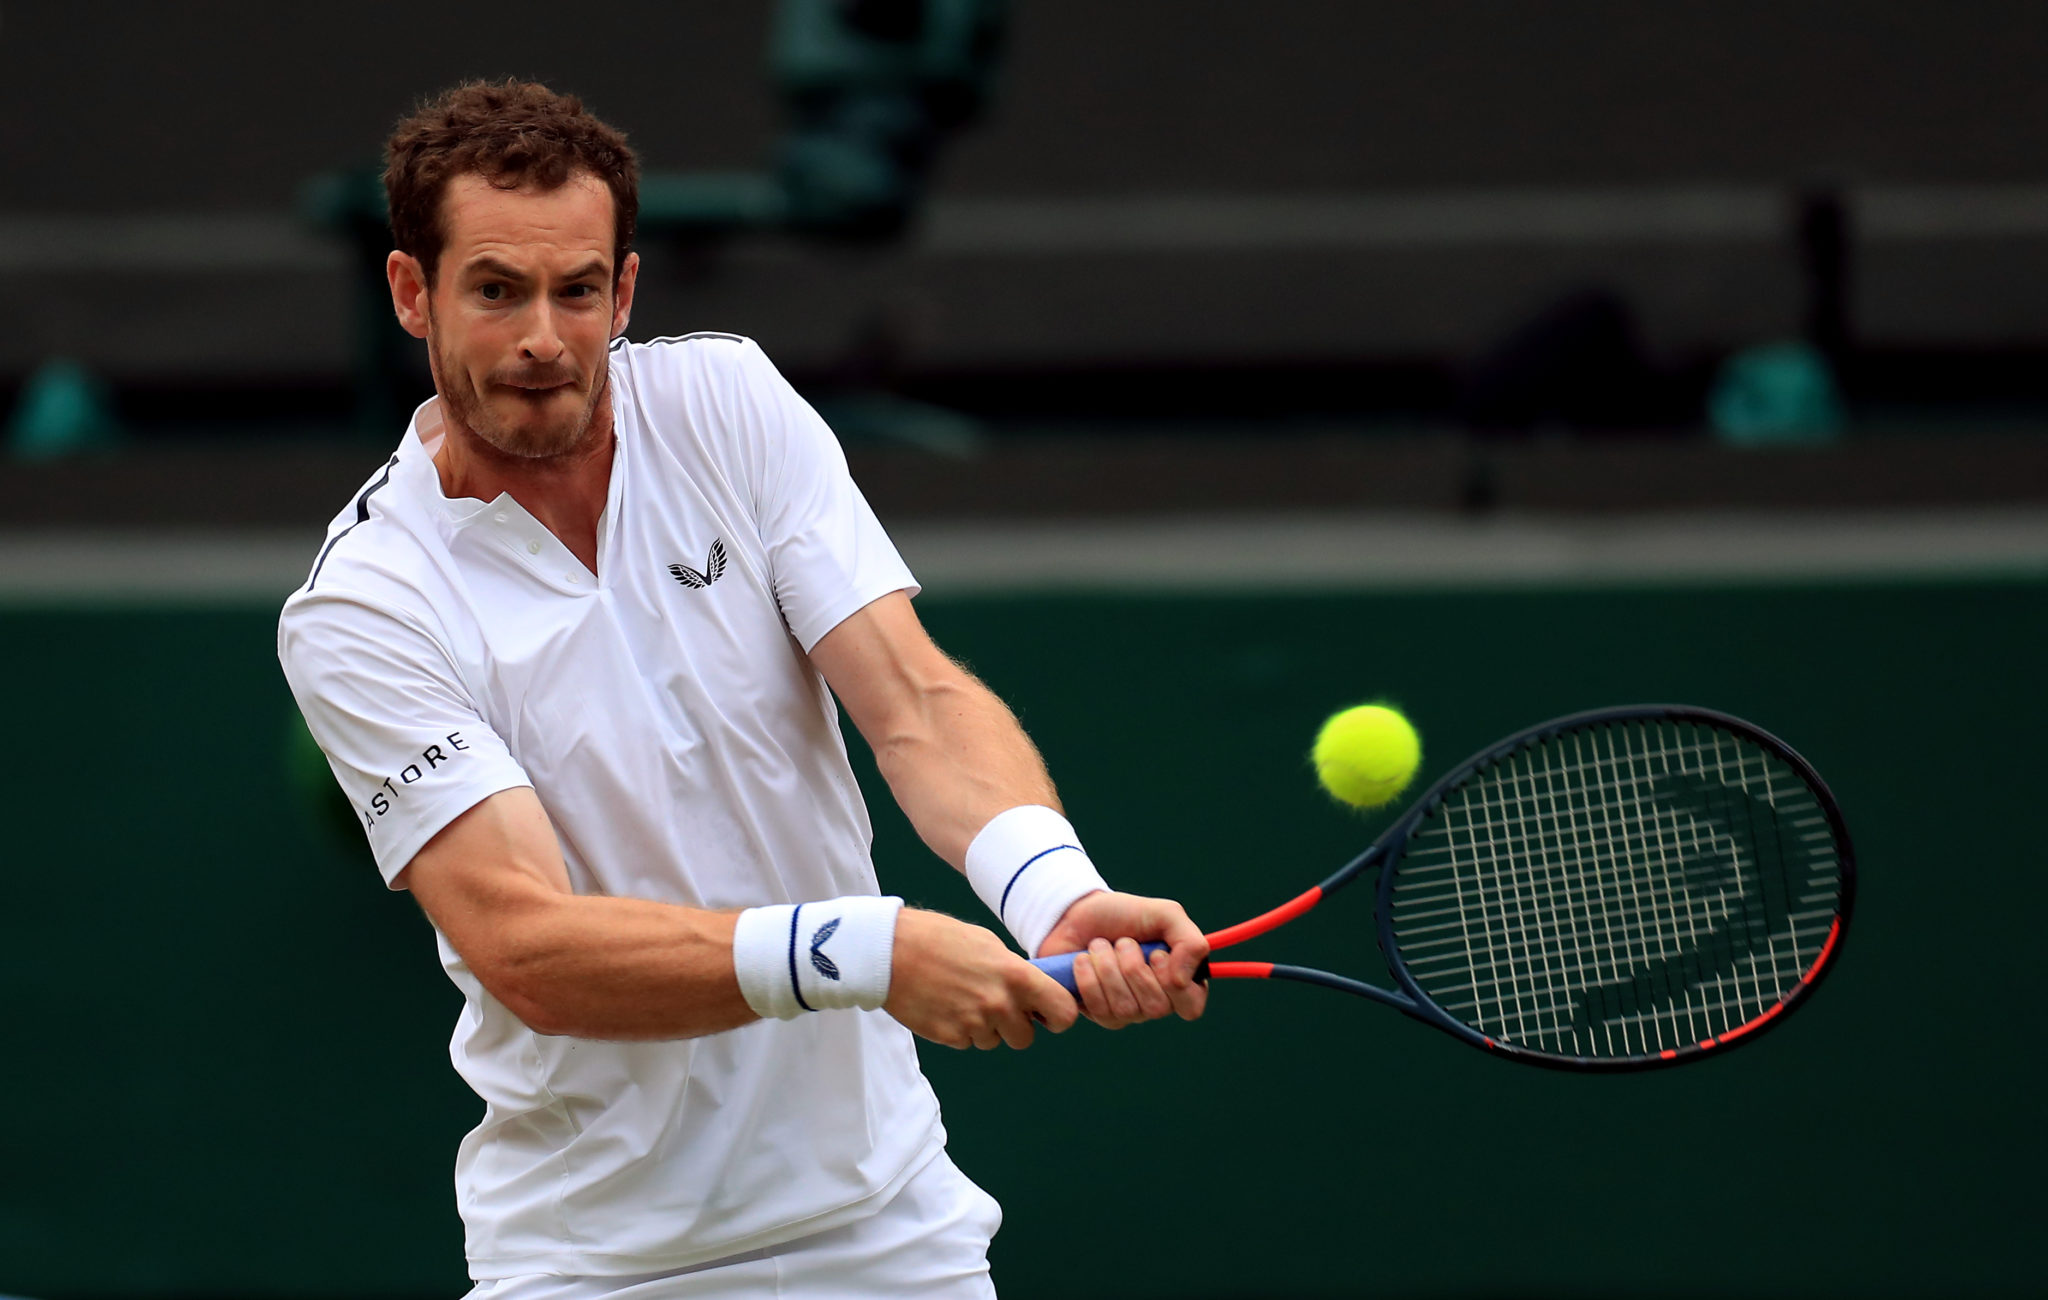 Andy Murray strikes a ball during a match.